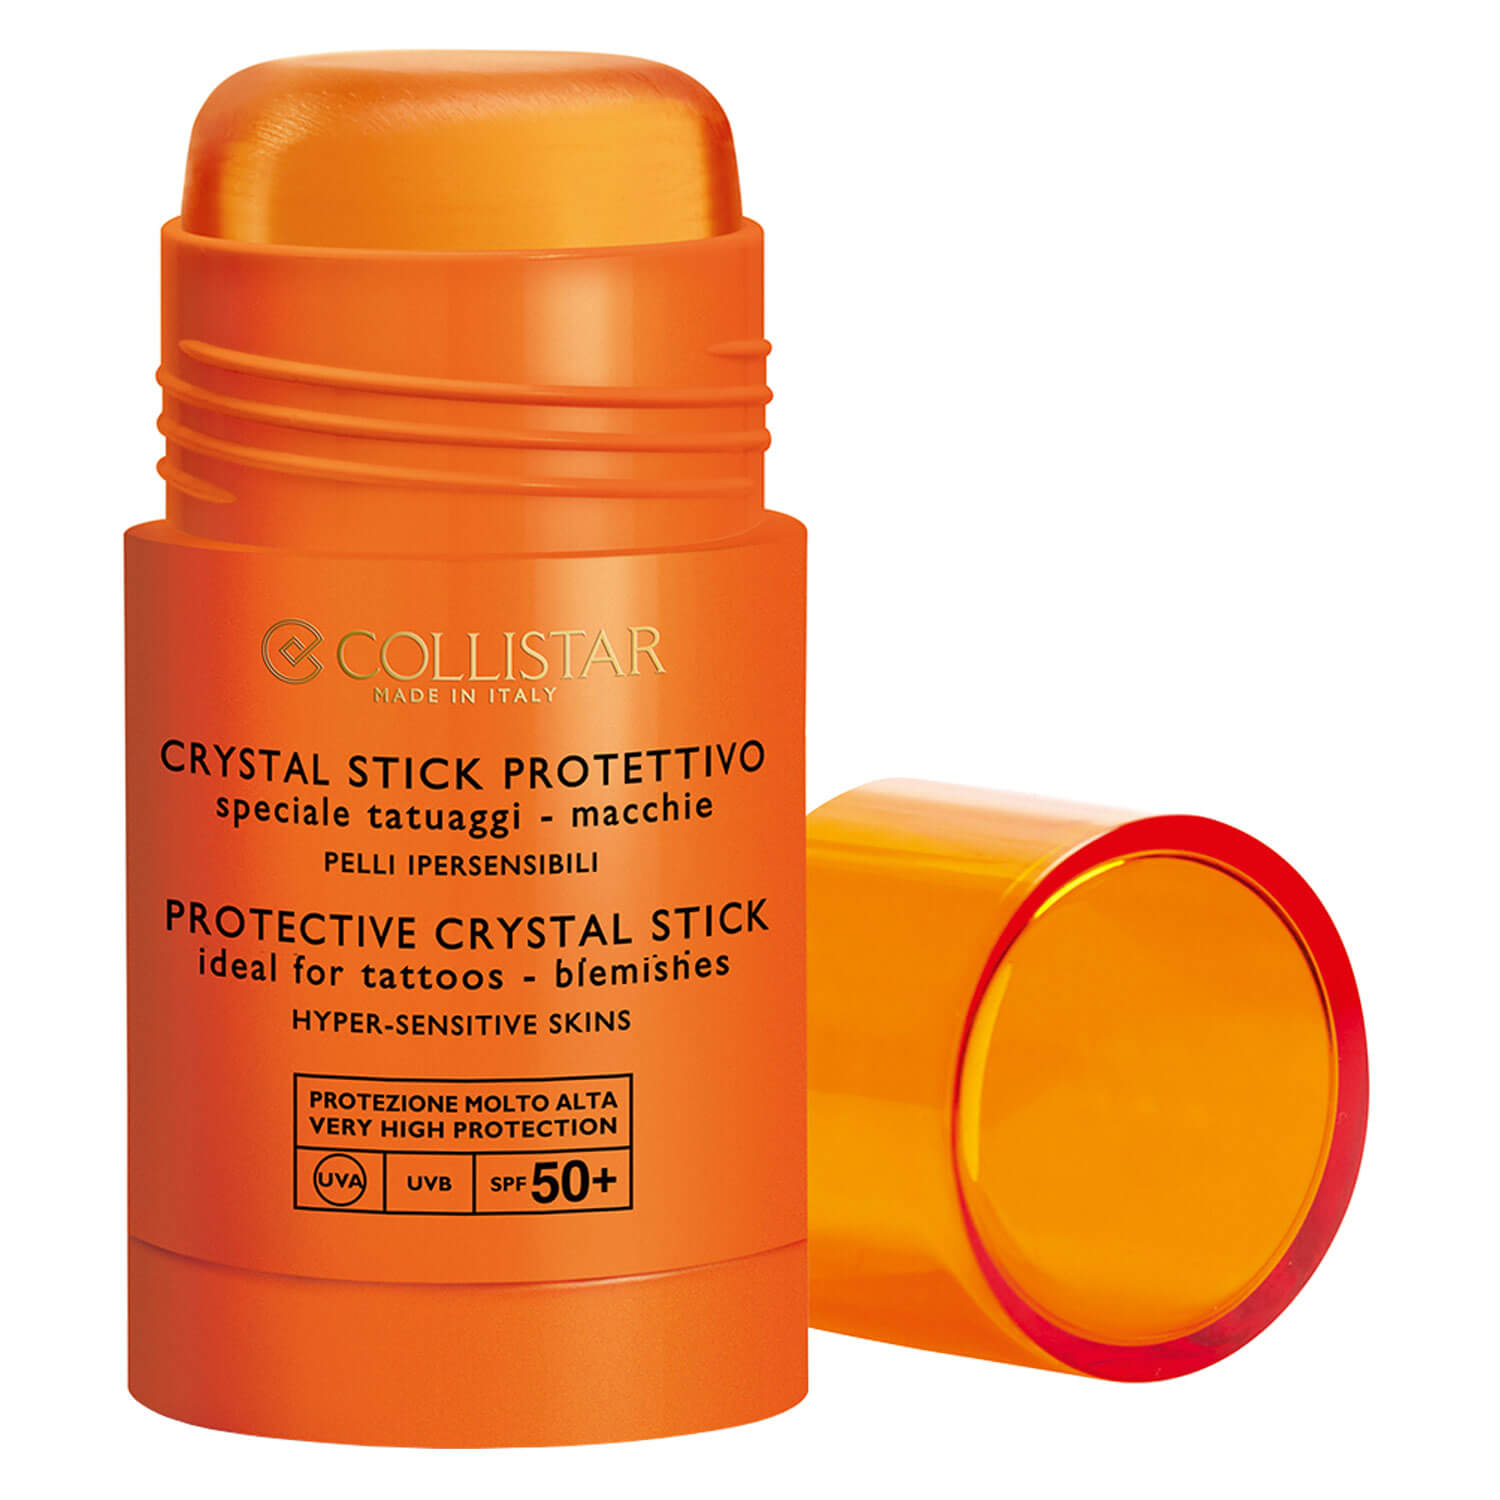 CS Sun - Protective Crystal Stick Ideal For Tattoos SPF50+